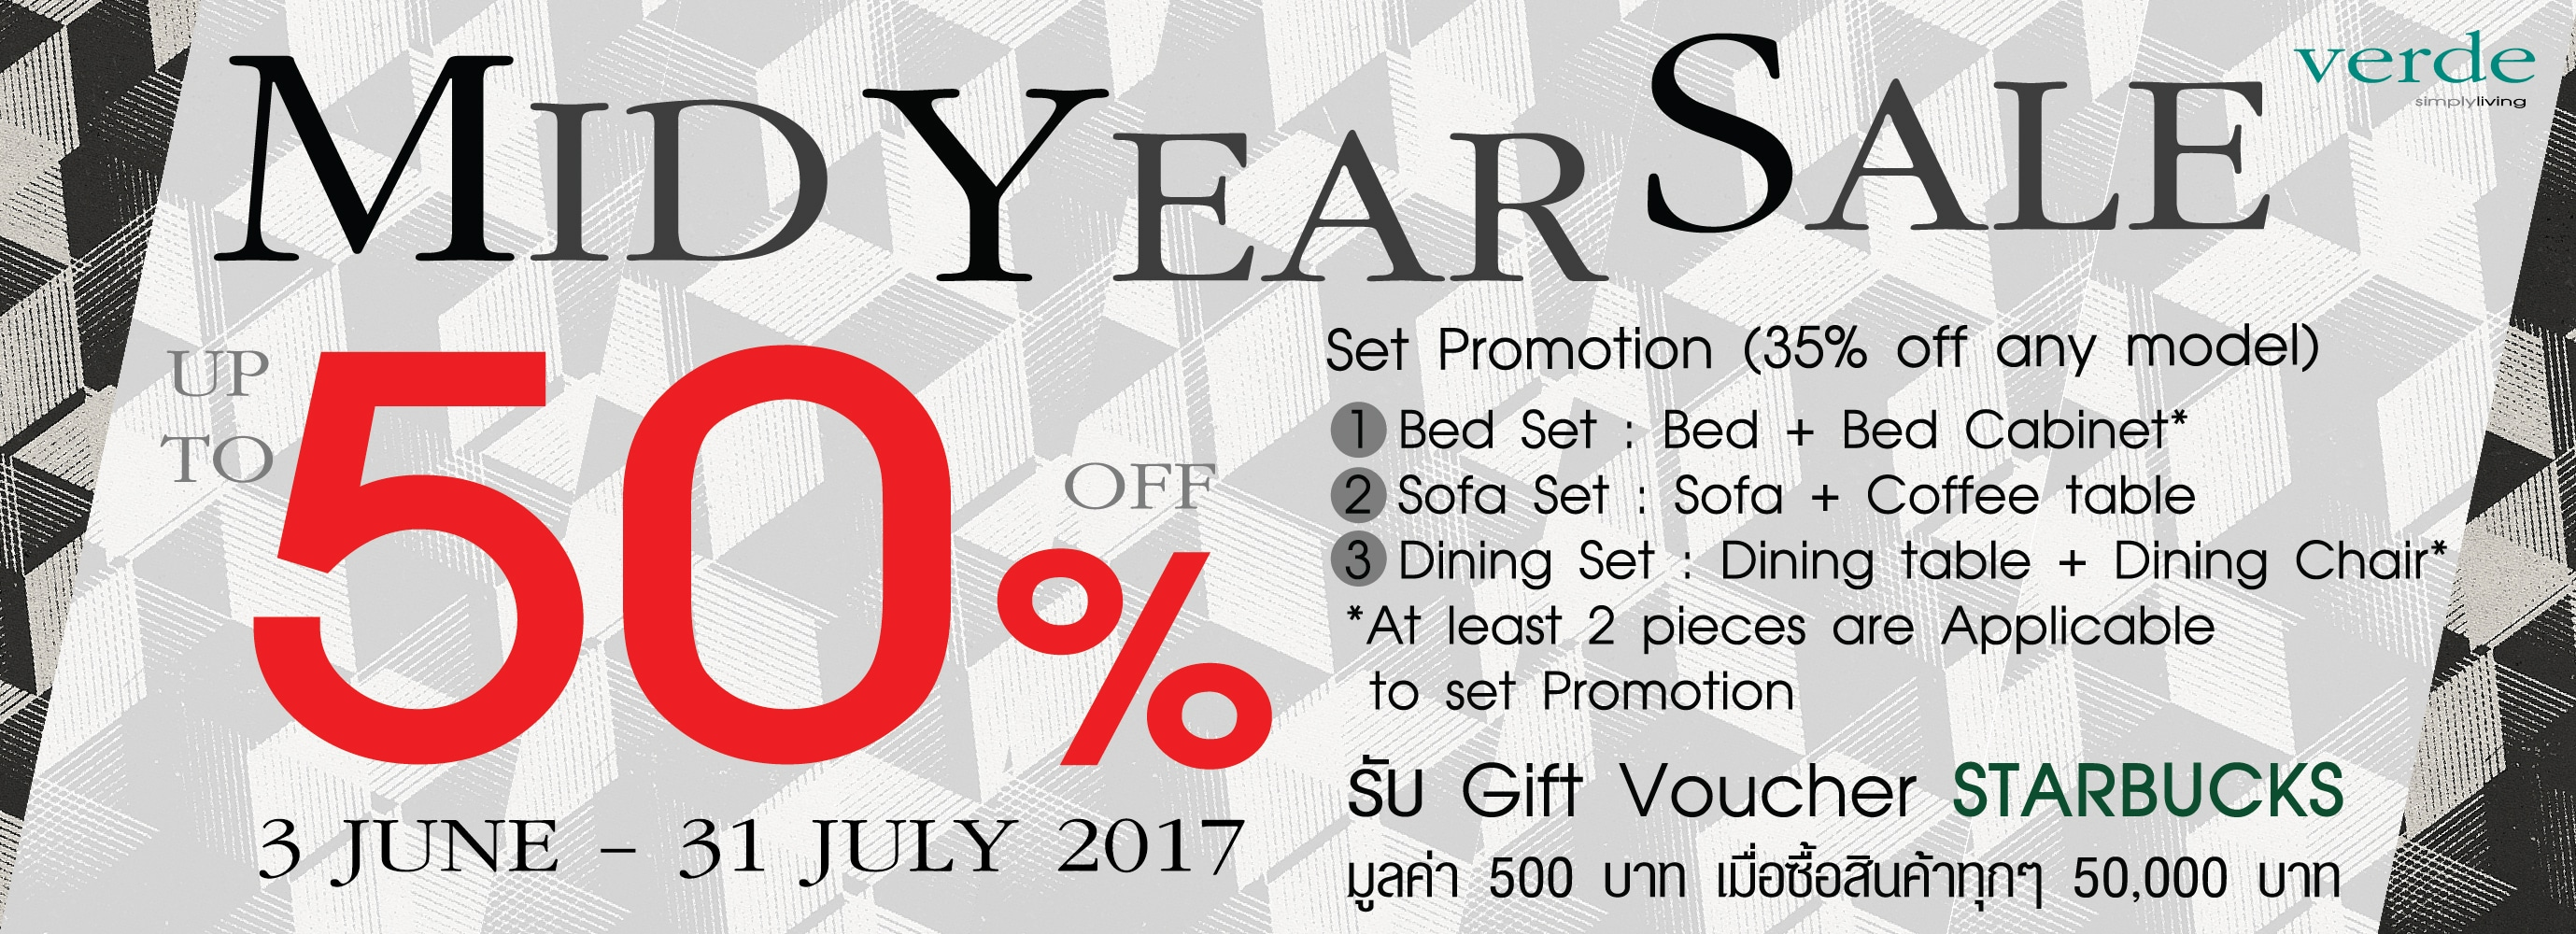 Verde Mid Year Sale Promotion